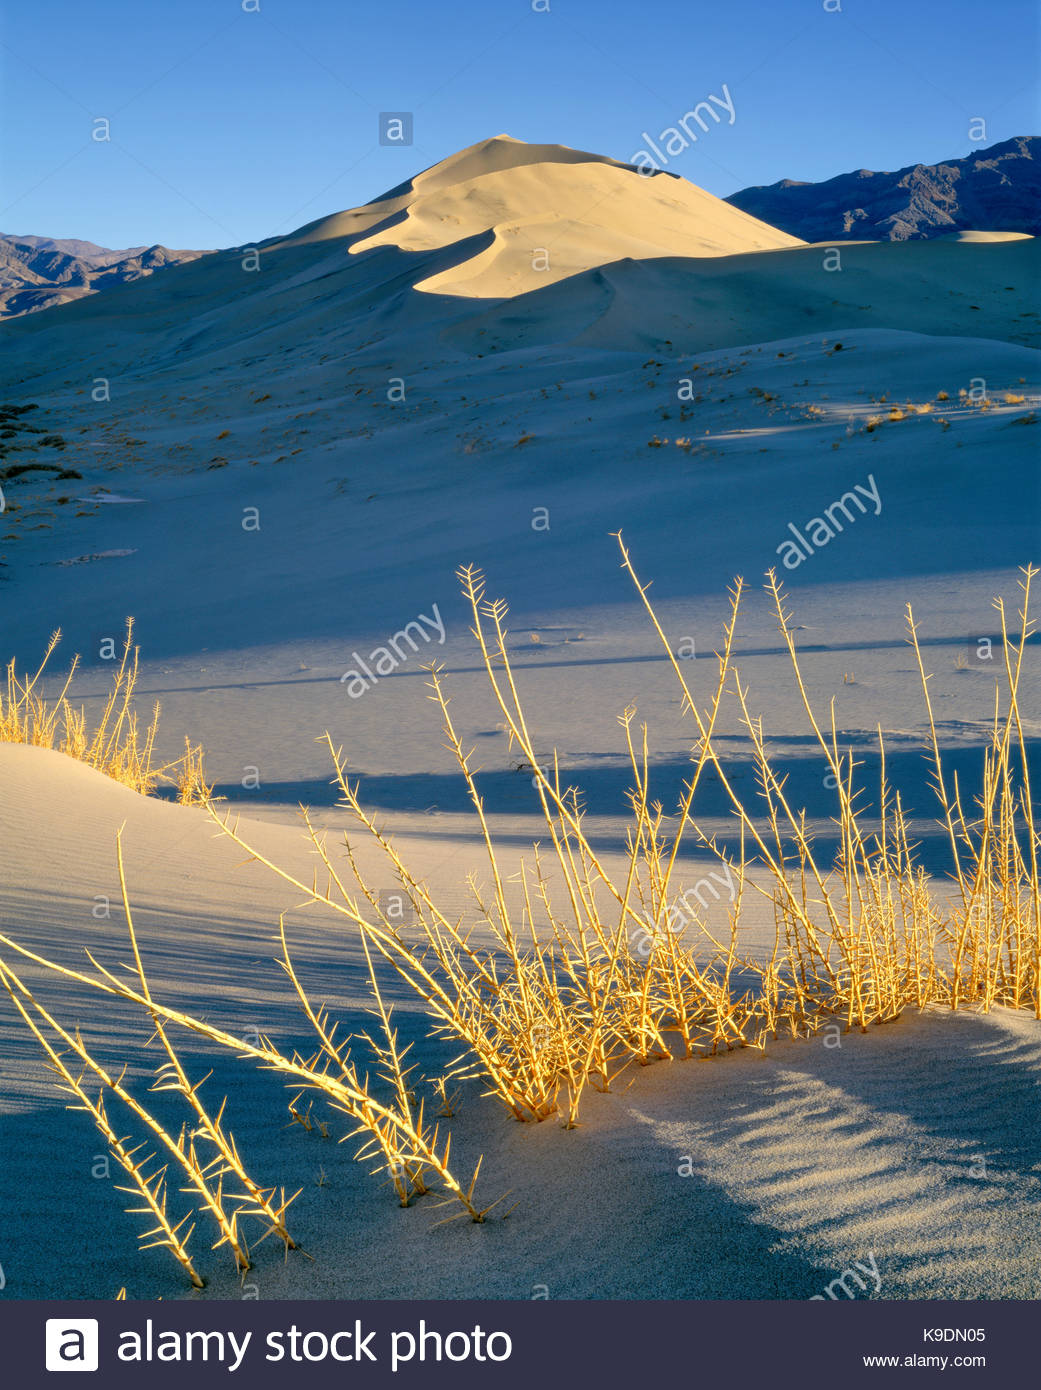 Eureka Dune Grass [endangered species] and Eureka Sand Dunes, Death Valley National Park, California - Stock Image